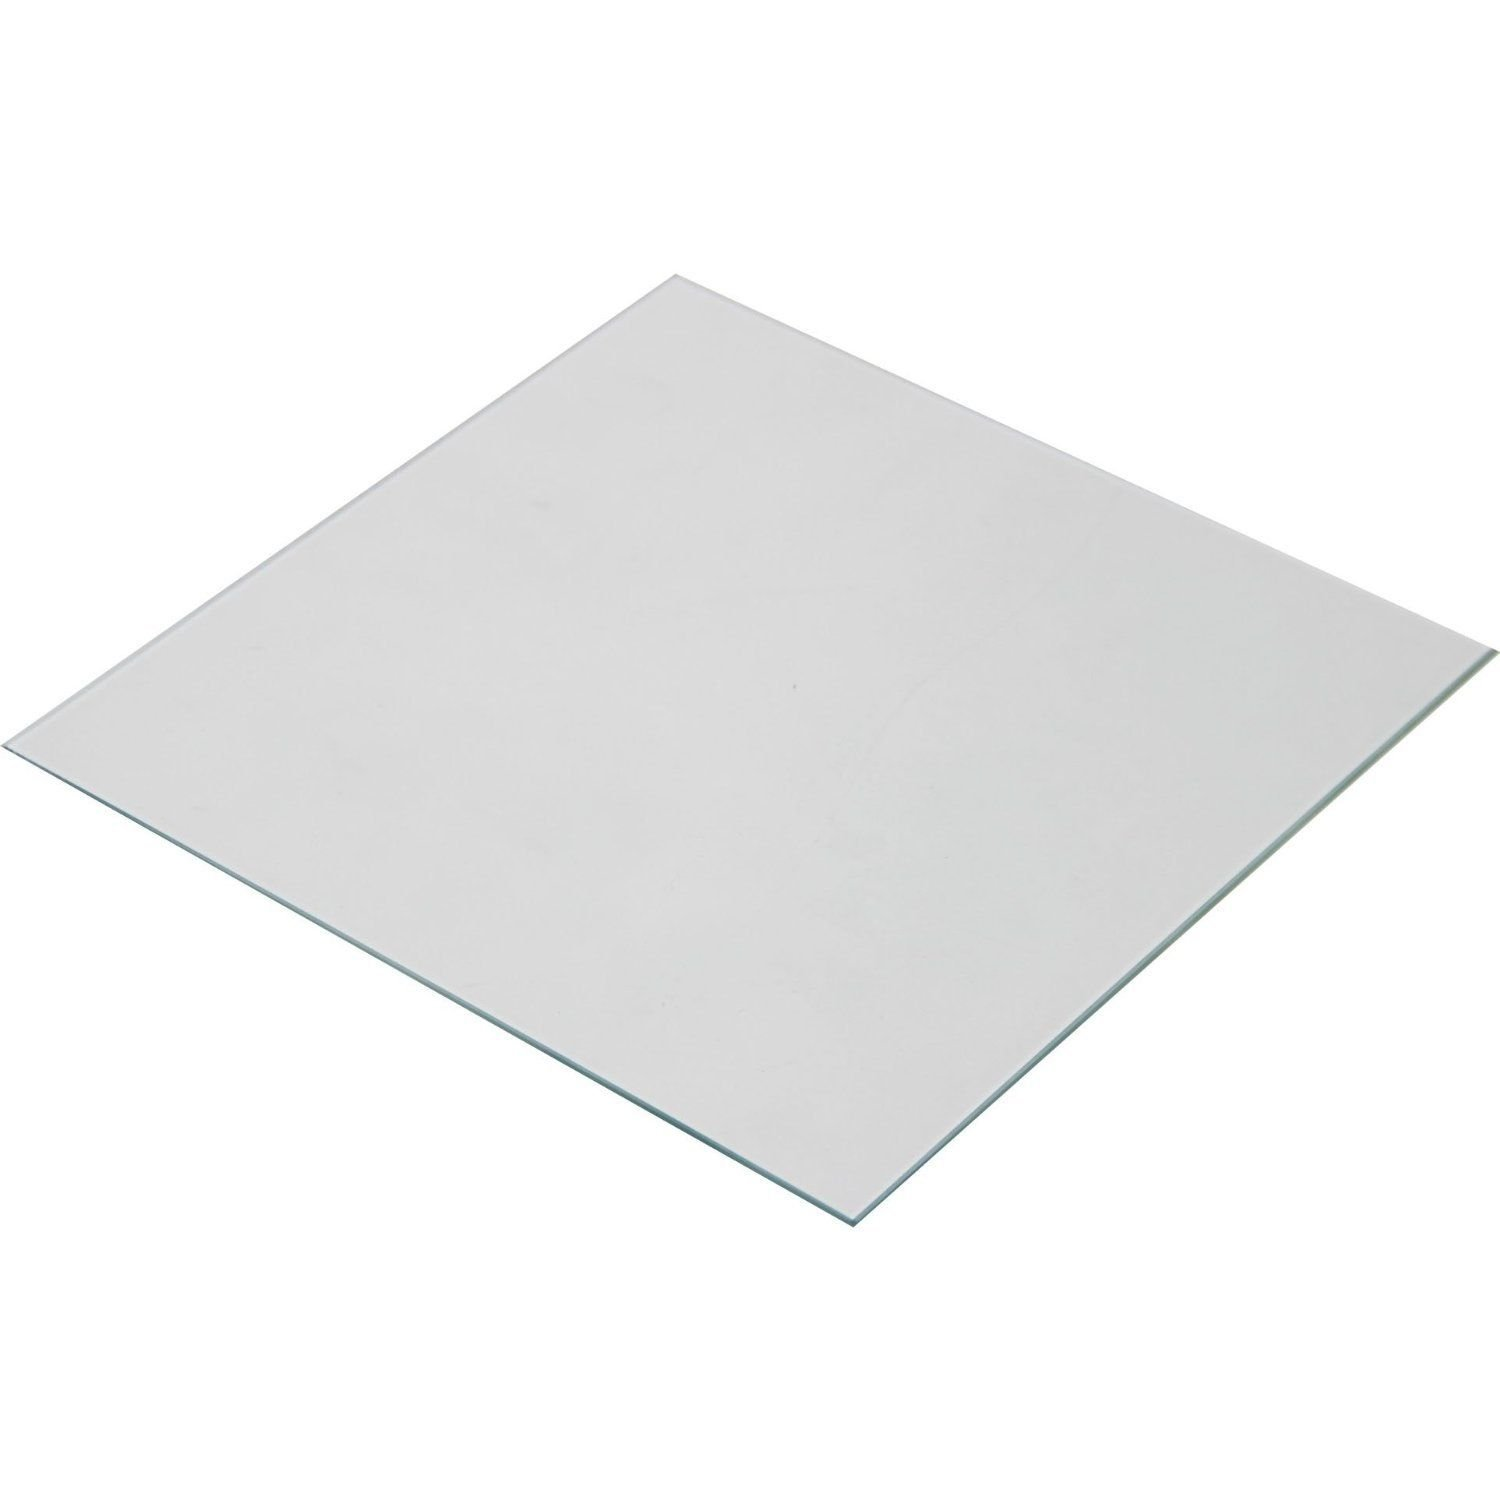 Wisamic Borosilicate Glass Plate Bed 200x200x3mm for 3D Printers Prusa, Monoprice Maker Select V2, Monoprice Maker Select Plus, etc